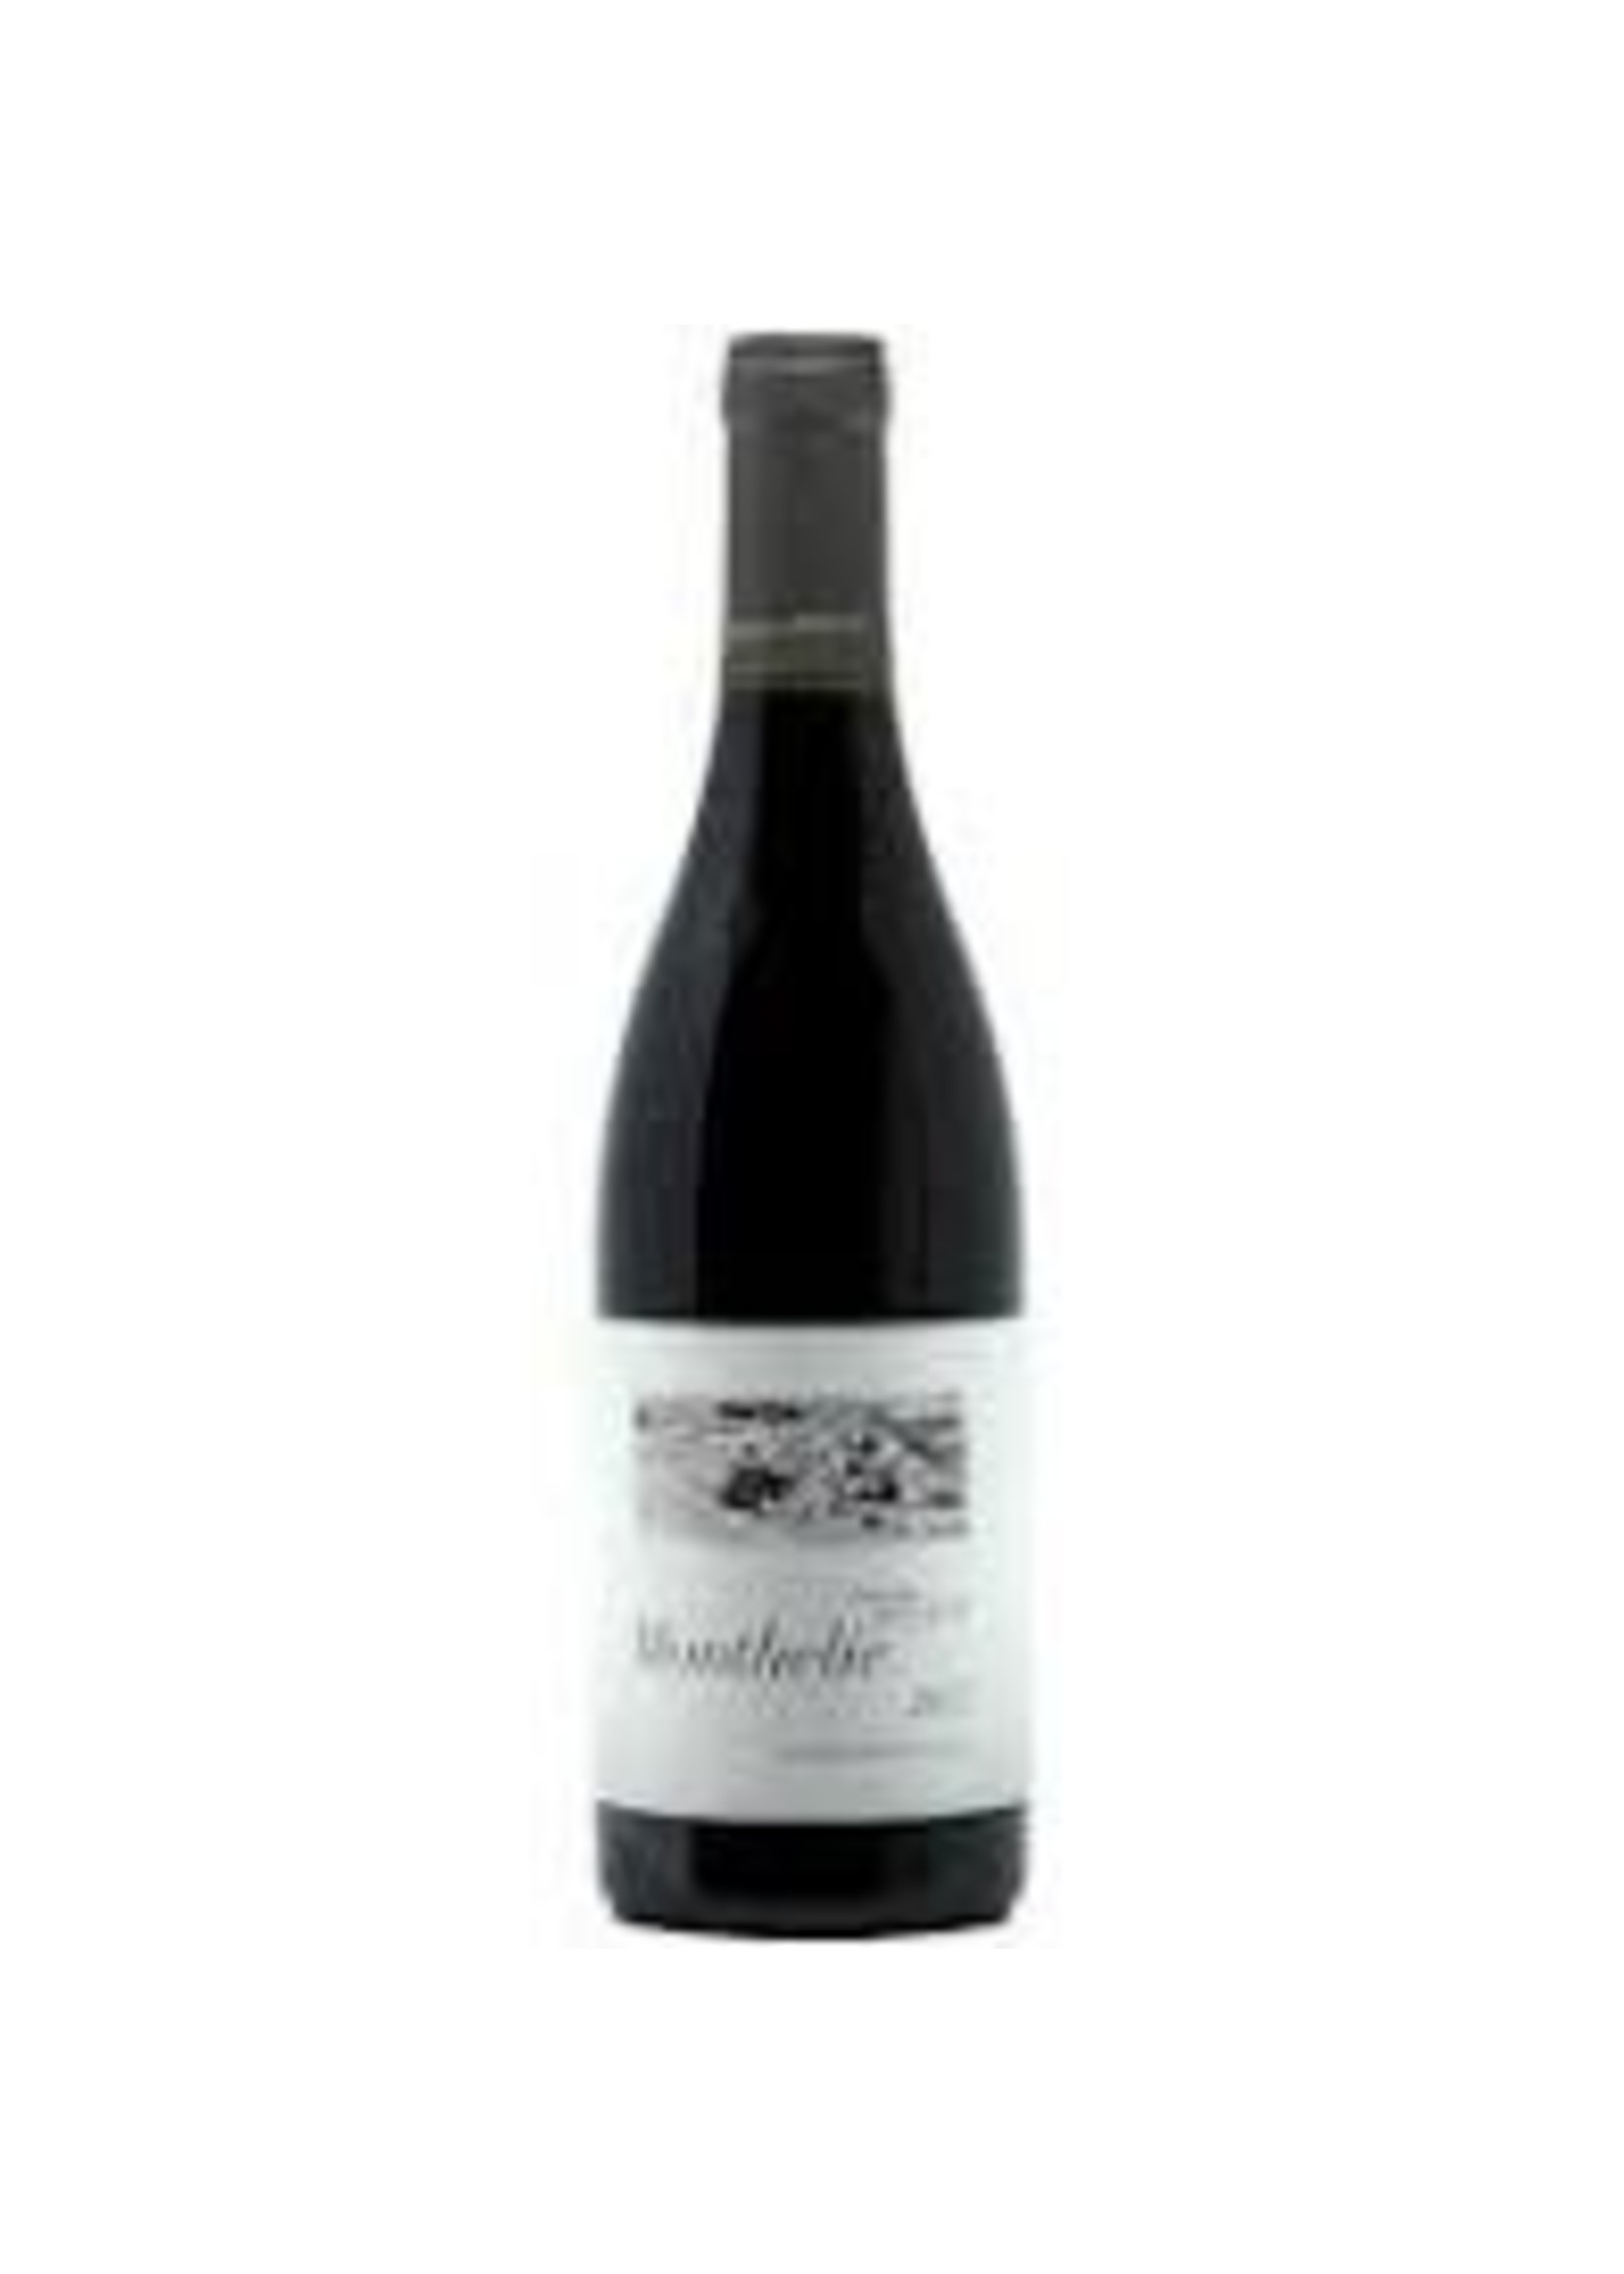 Roulot 2017 Monthelie 750ml